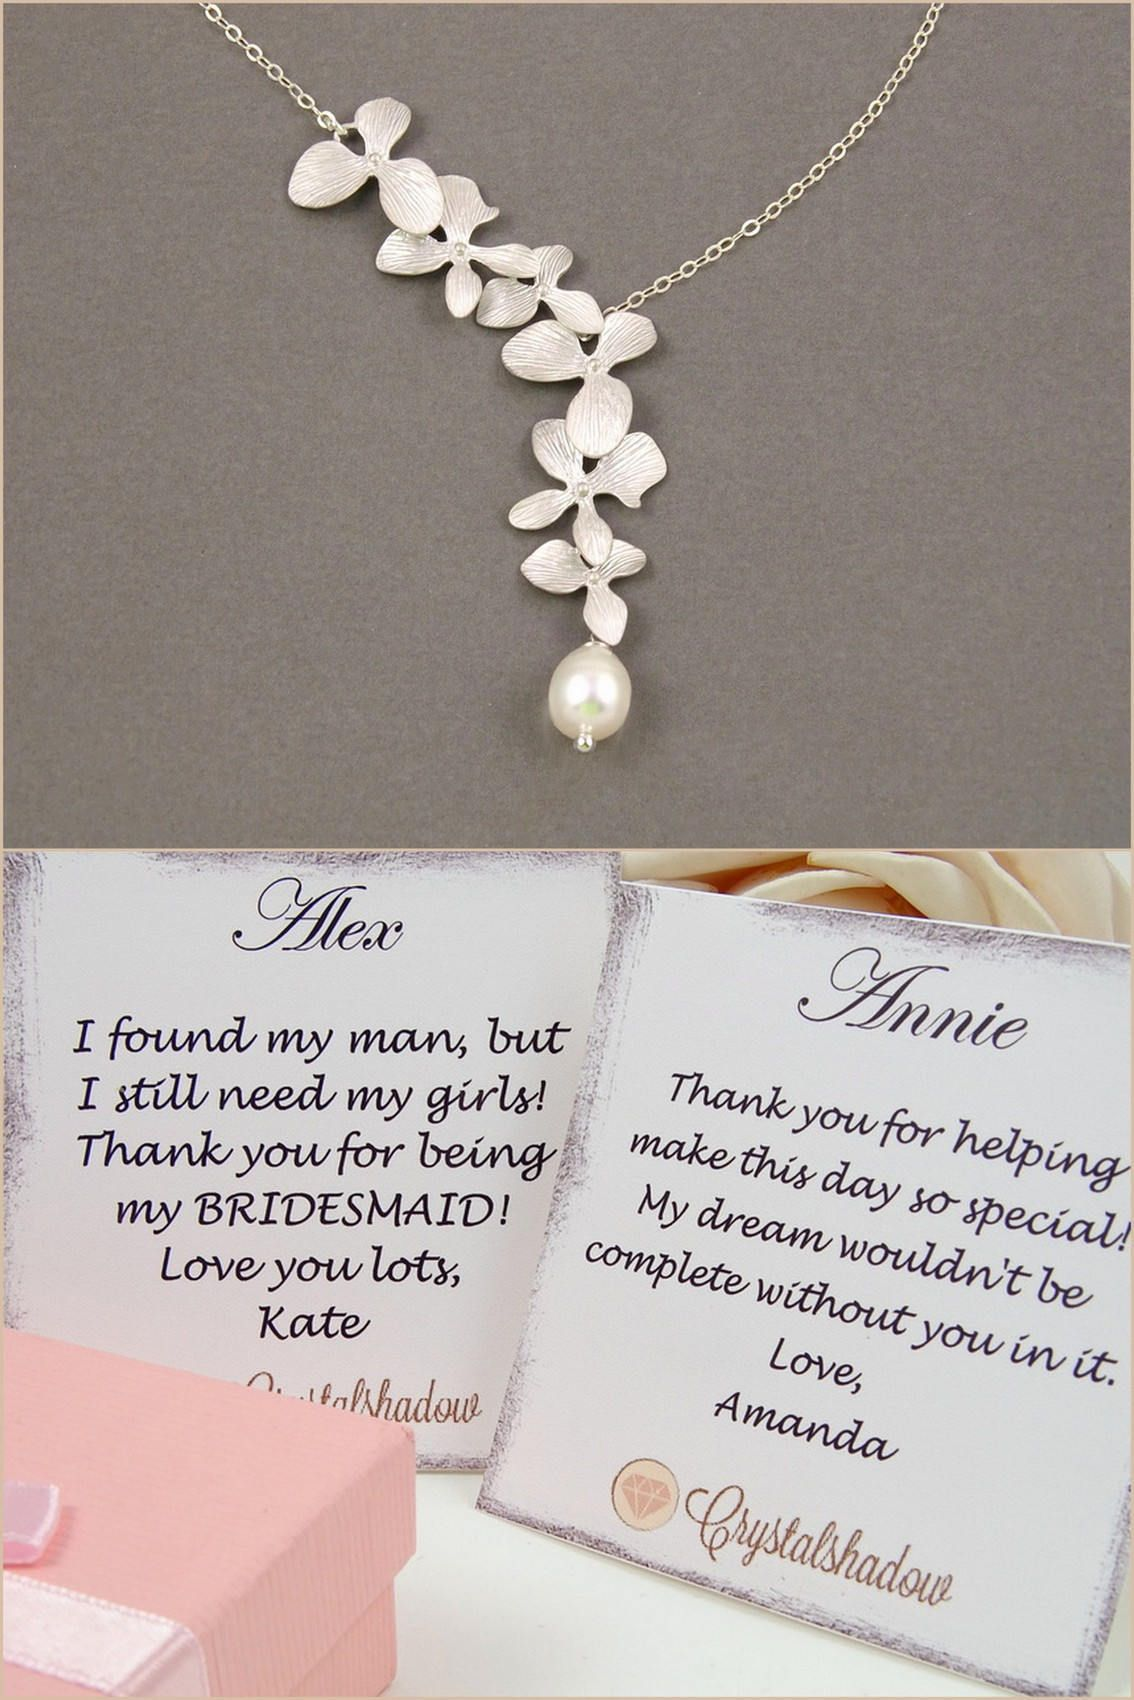 Silver Lariat Necklace Orchid Flower Jewelry Pearl Wedding Gift Ideas 21st Birthday Special Gifts Female